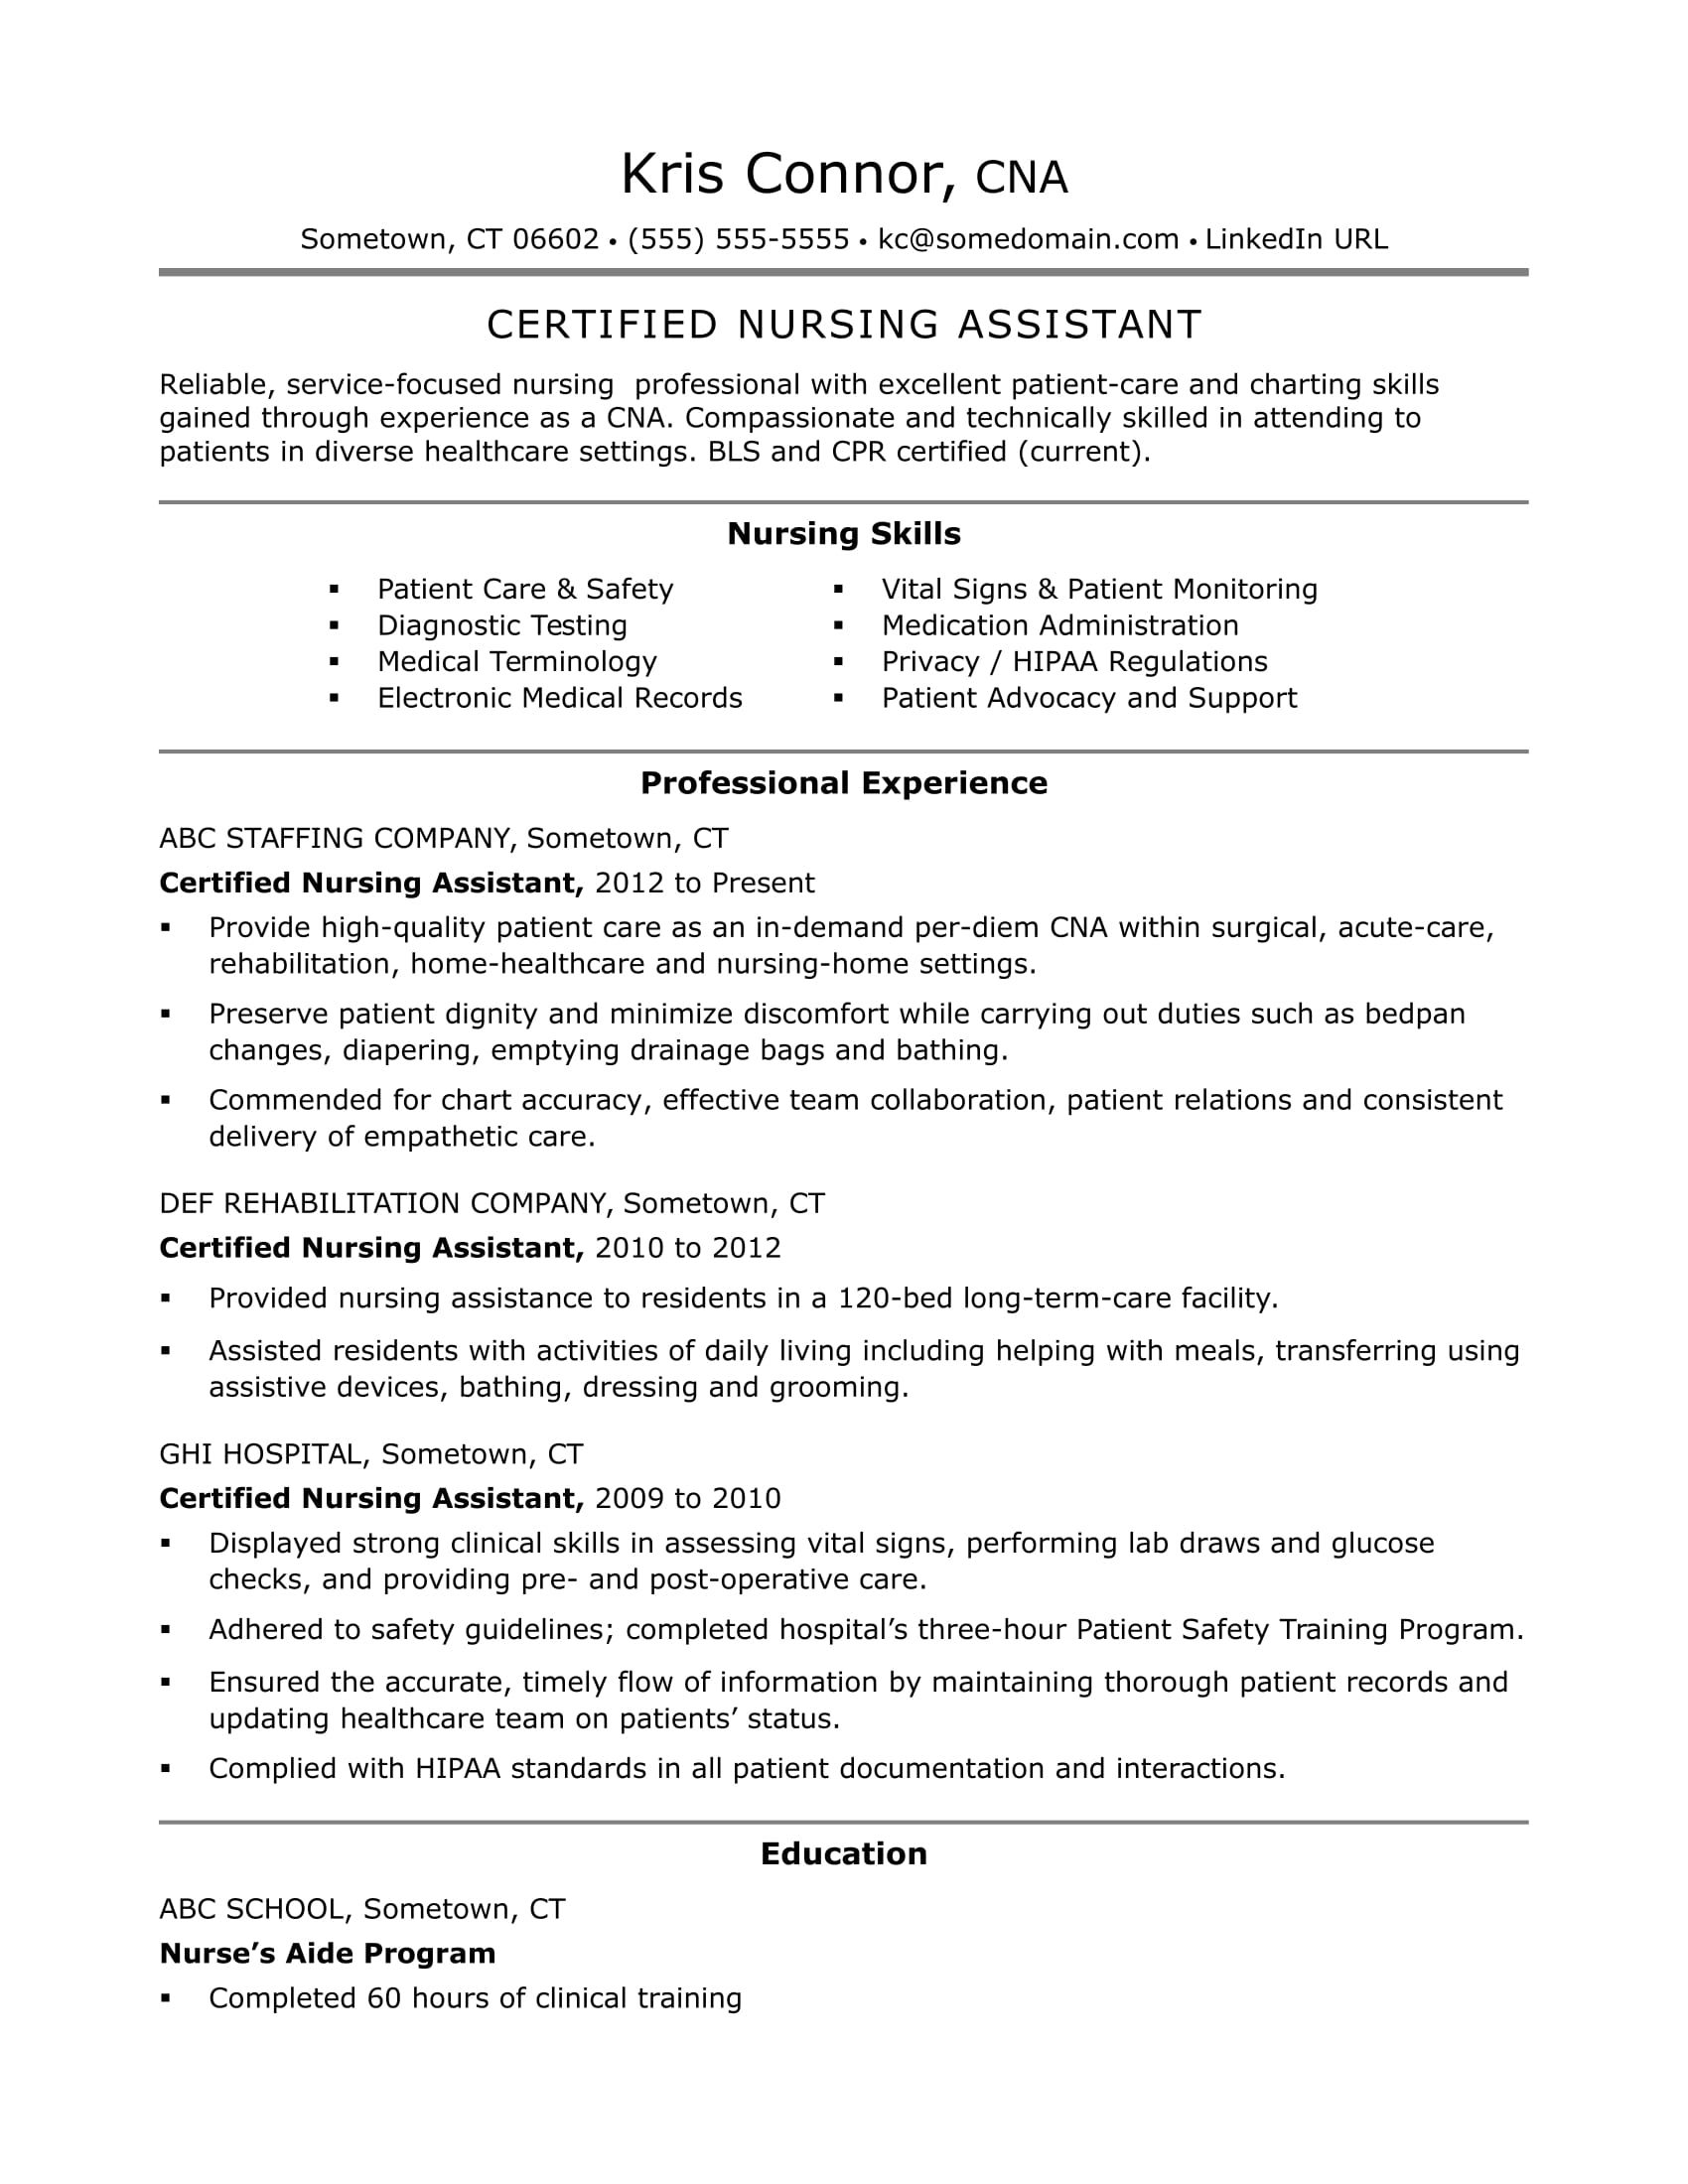 Exceptional CNA Resume Example Regarding Sample Resume For Cna